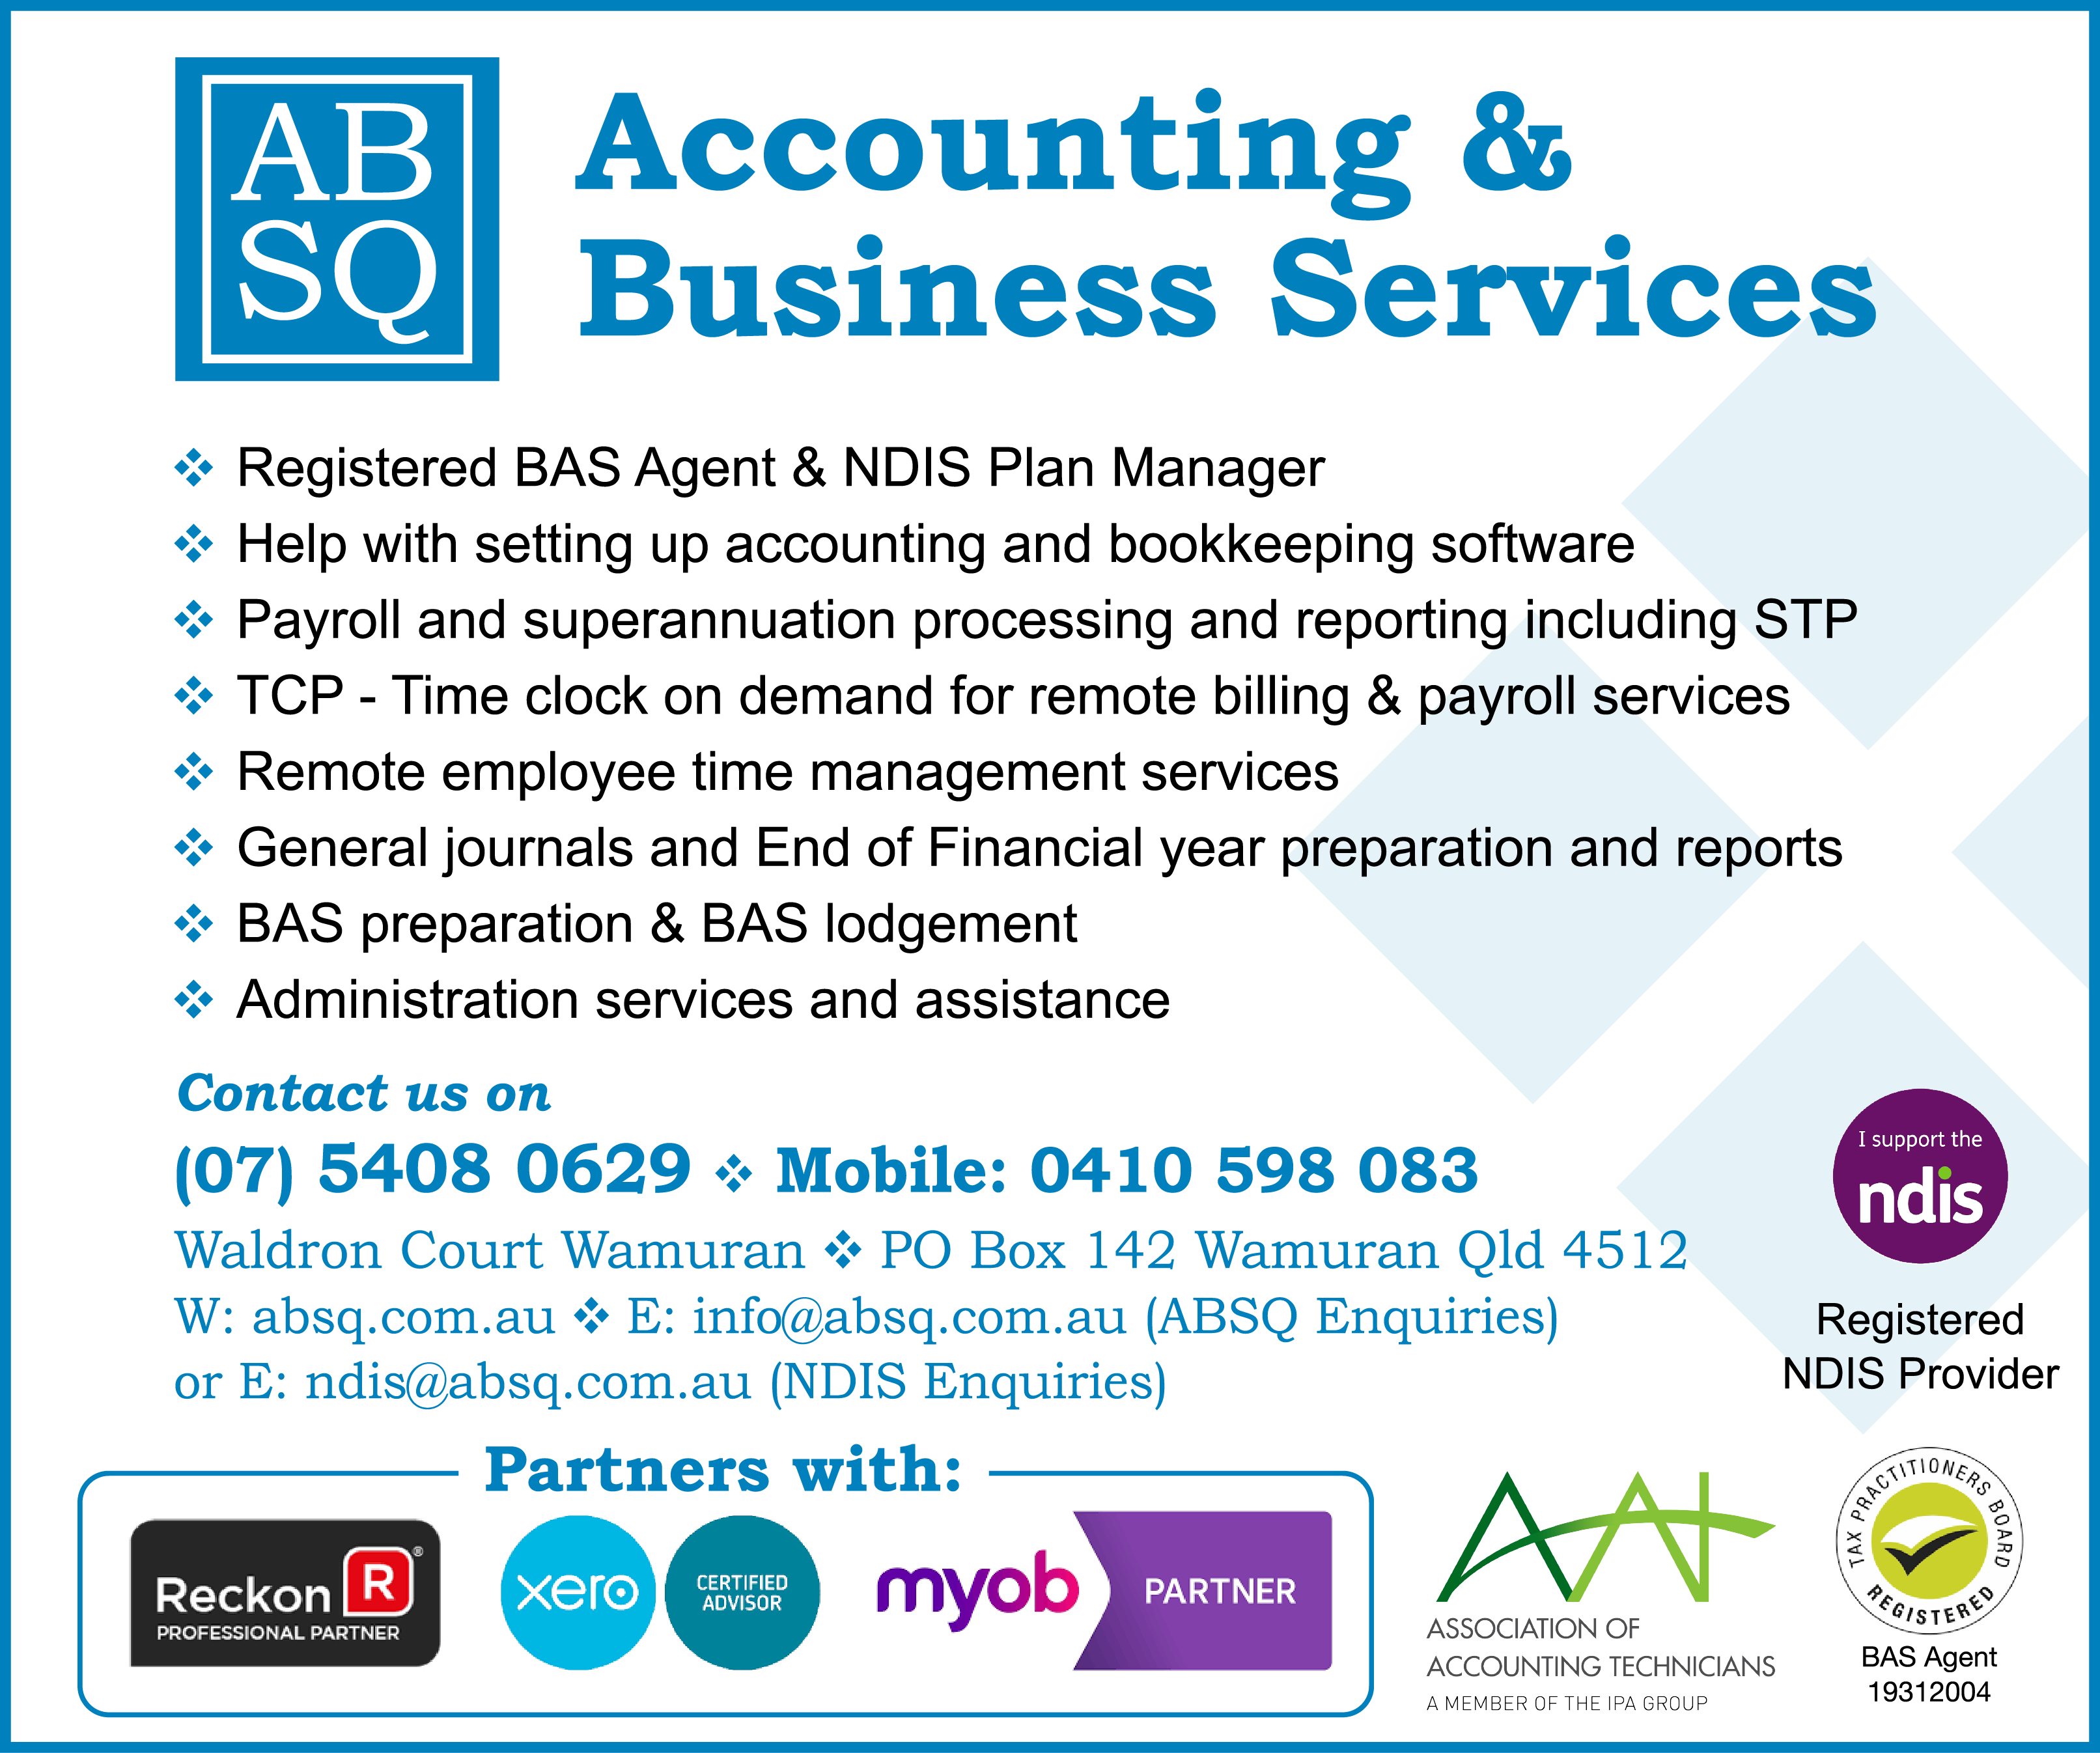 ABSQ Accounting and Business Services - advertisement